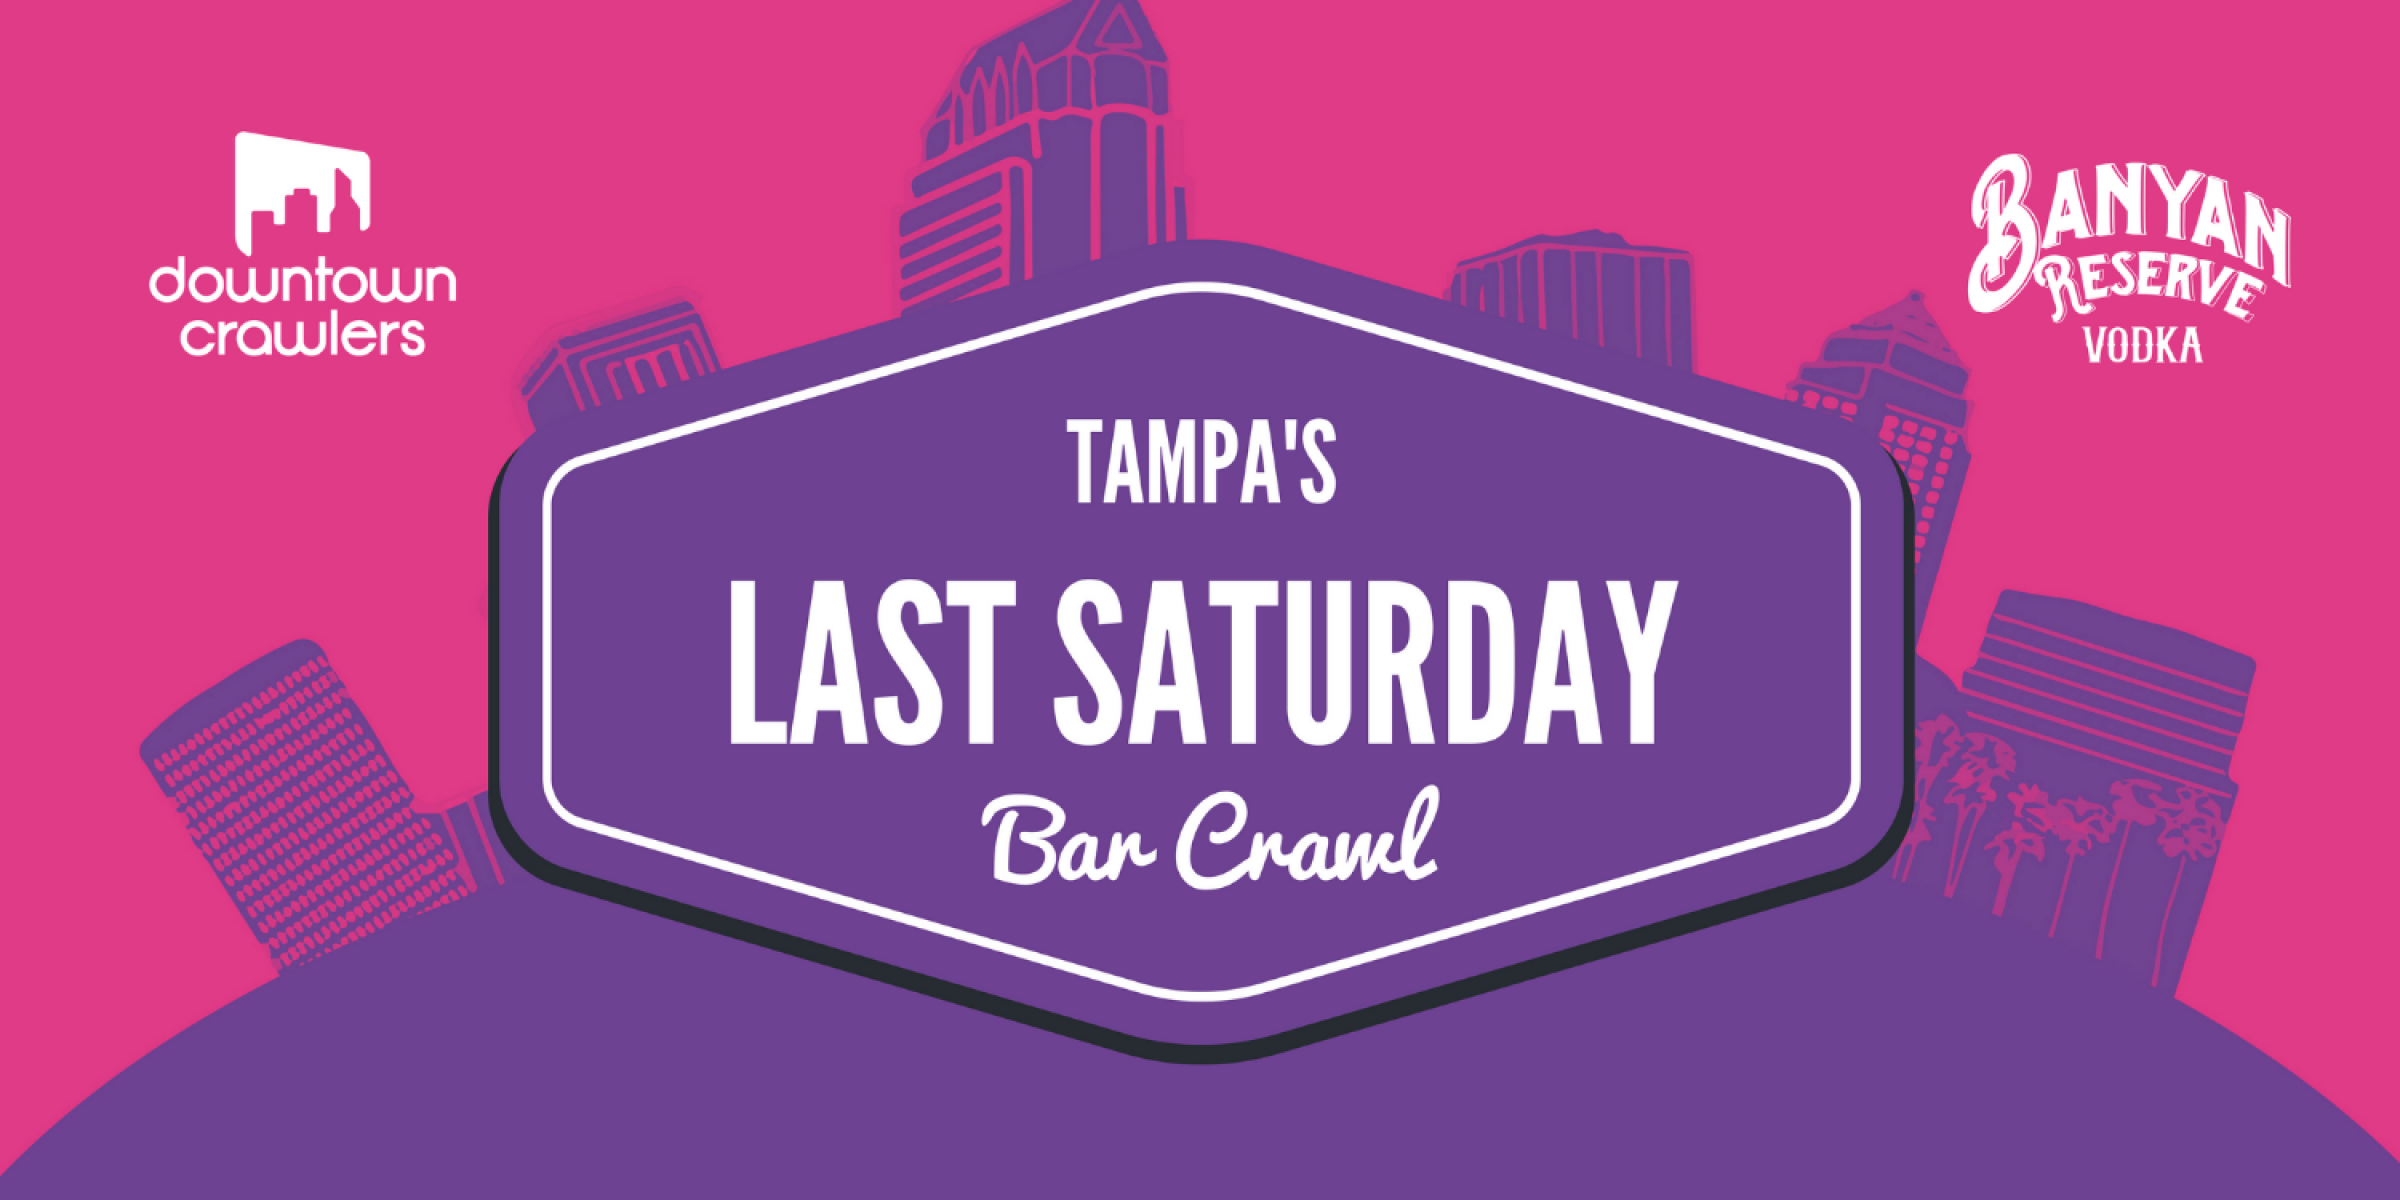 Tampa's Last Saturday Bar Crawl with Party Bus